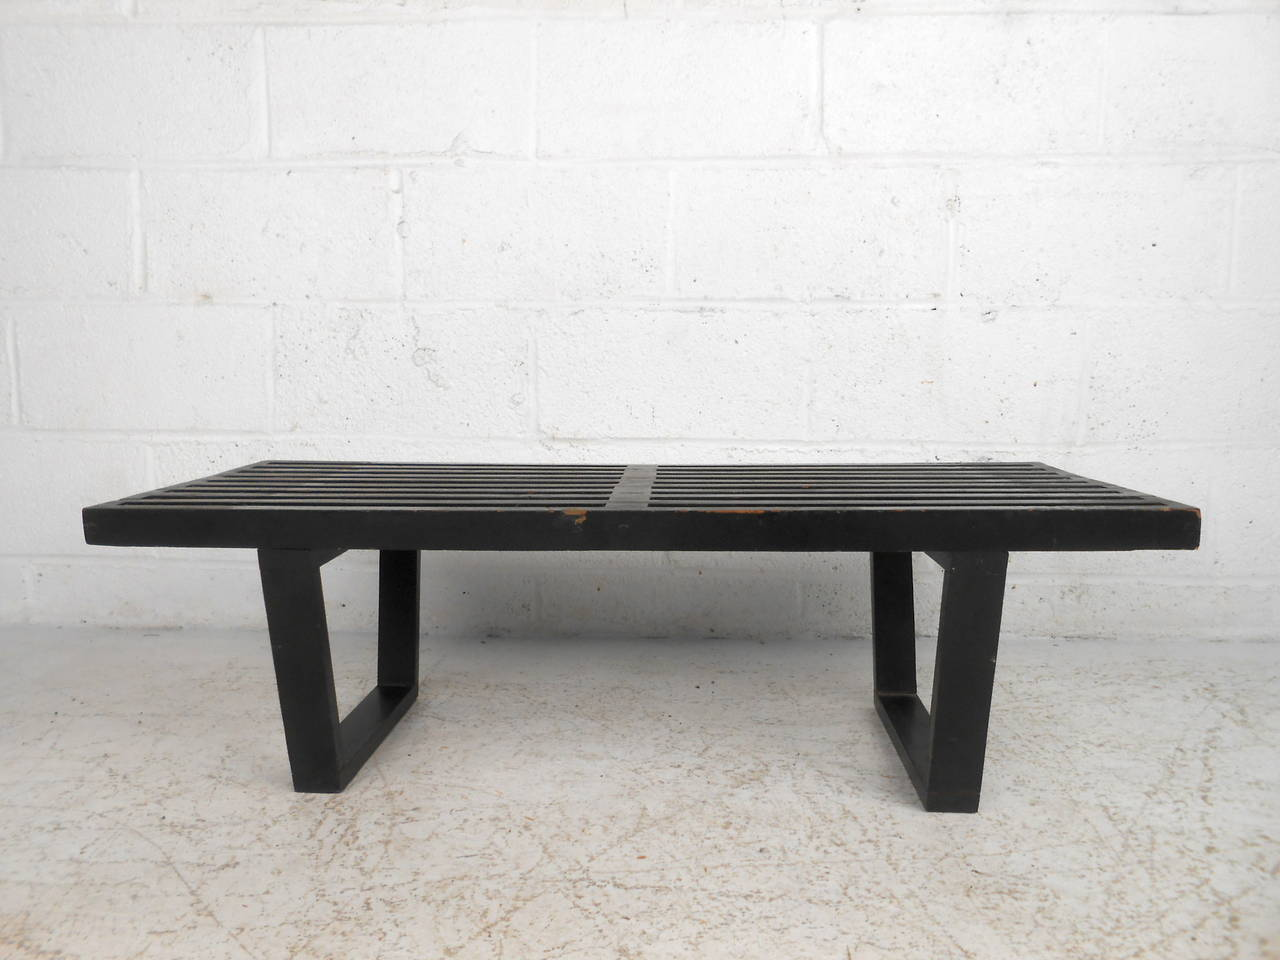 This midcentury slat bench by George Nelson features a compact size and ebonized finish which offer a bold modern accent to any home or office space.   Please confirm item location (NY or NJ) with dealer.